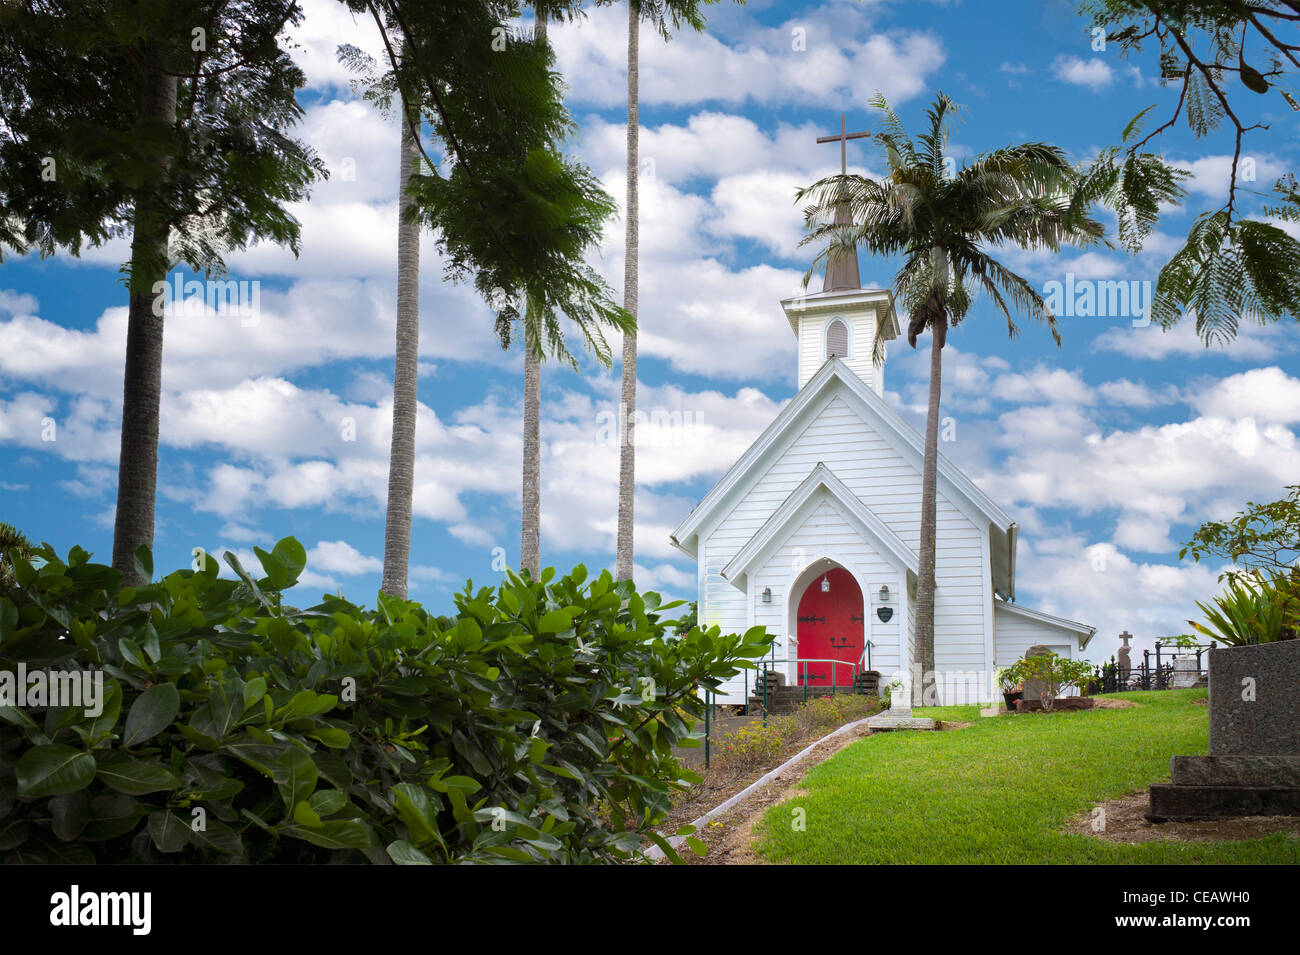 Episcopal Church at Hawi. Hawaii, The Big Island - Stock Image